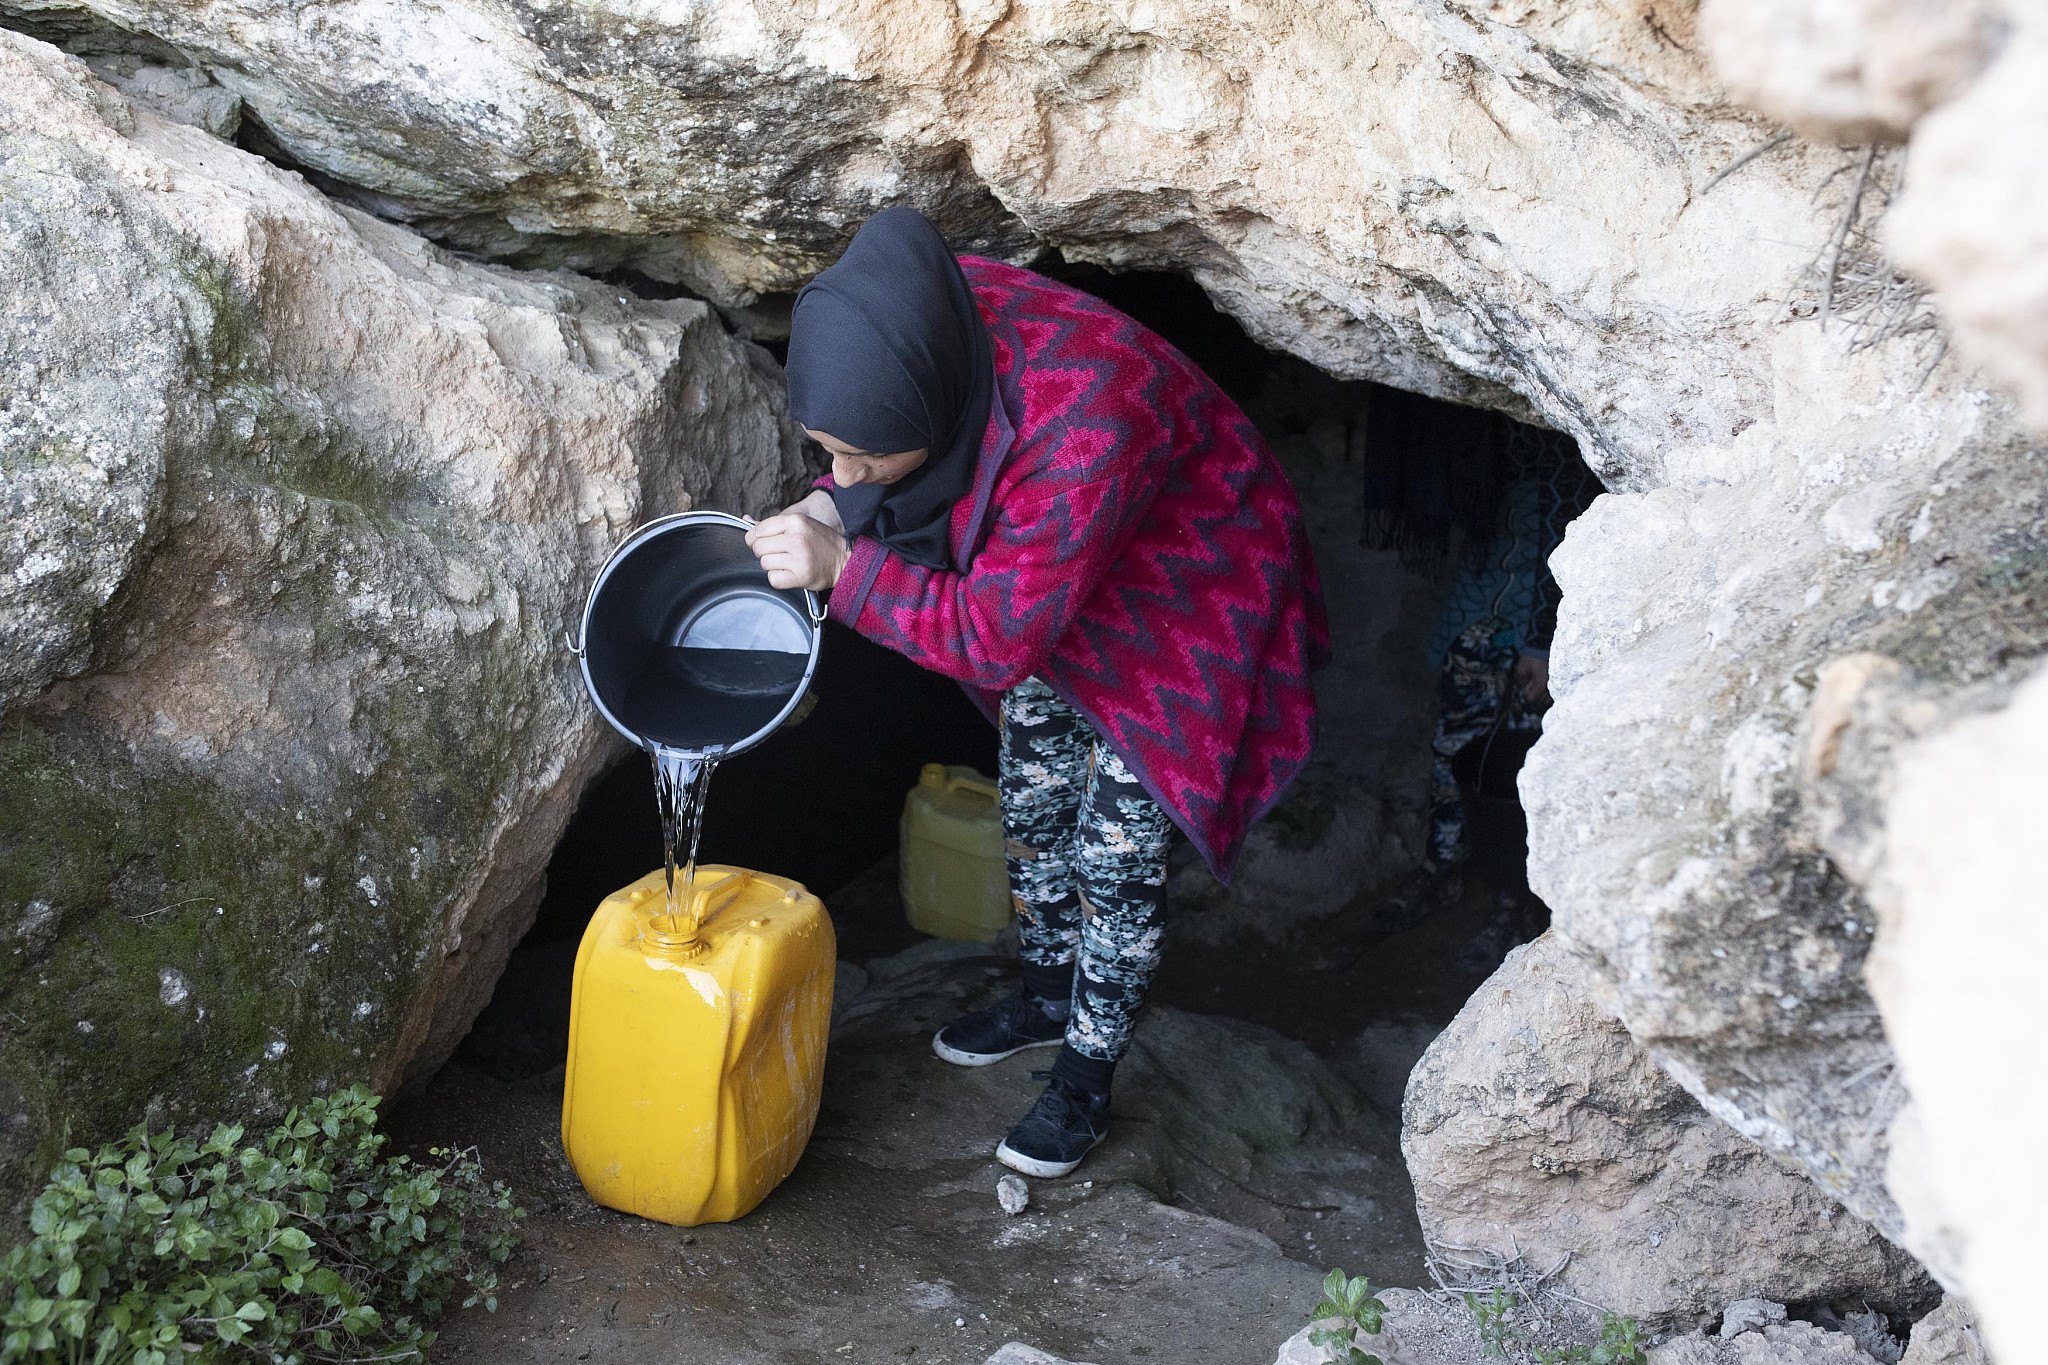 A Palestinian woman draws water from the newly-reclaimed Ein Albeida spring, South Hebron Hills, January 3, 2020. (Oren Ziv/Activestills.org)